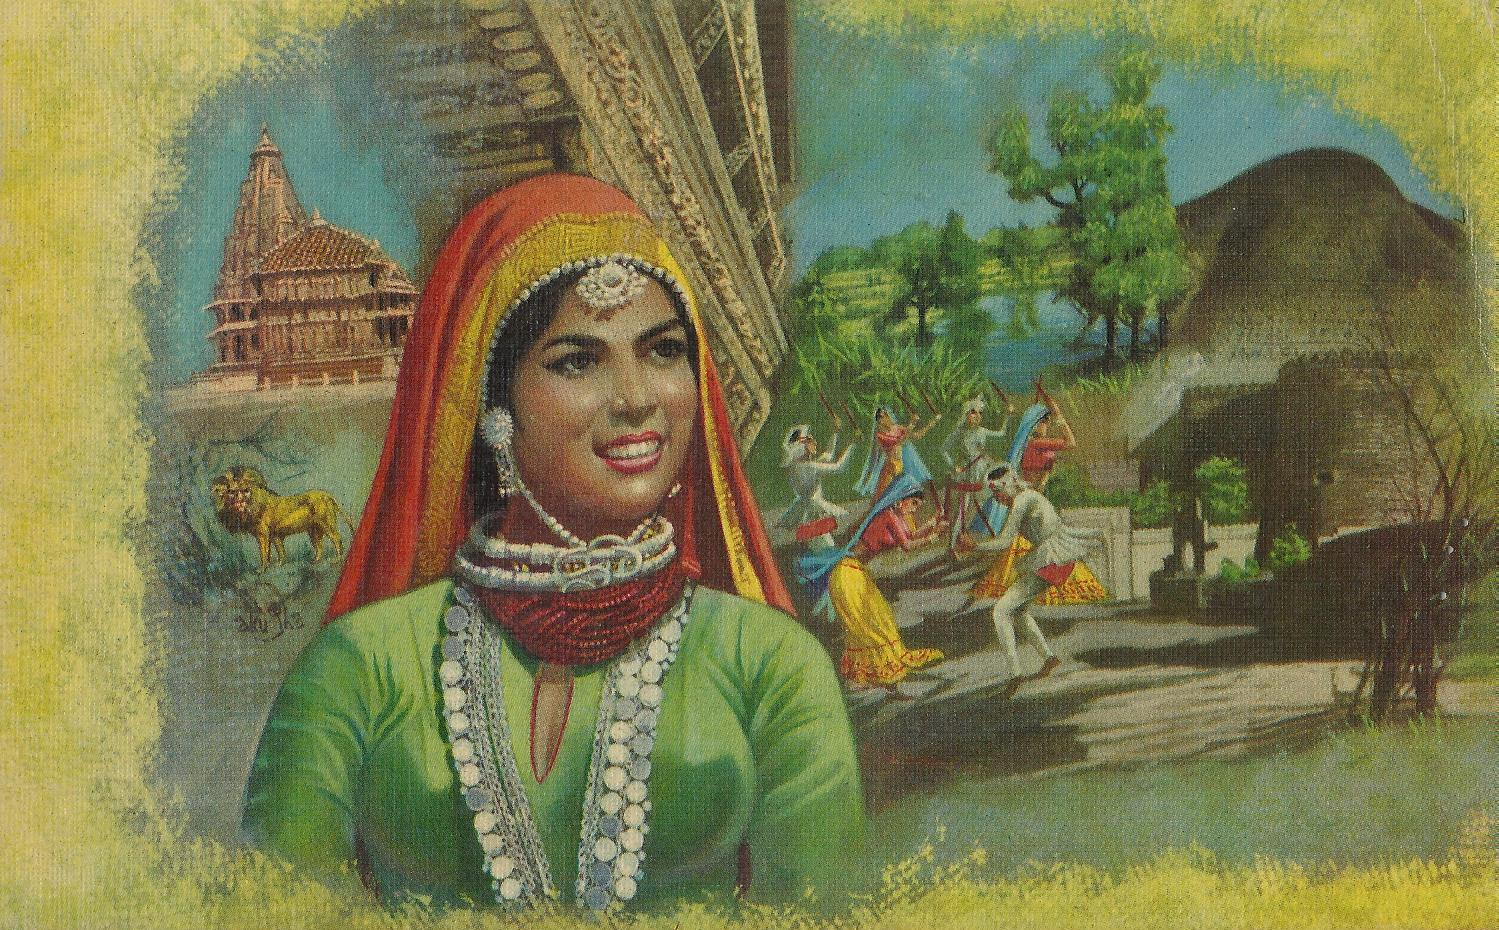 Pictures of Indian Culture And Heritage - #rock-cafe